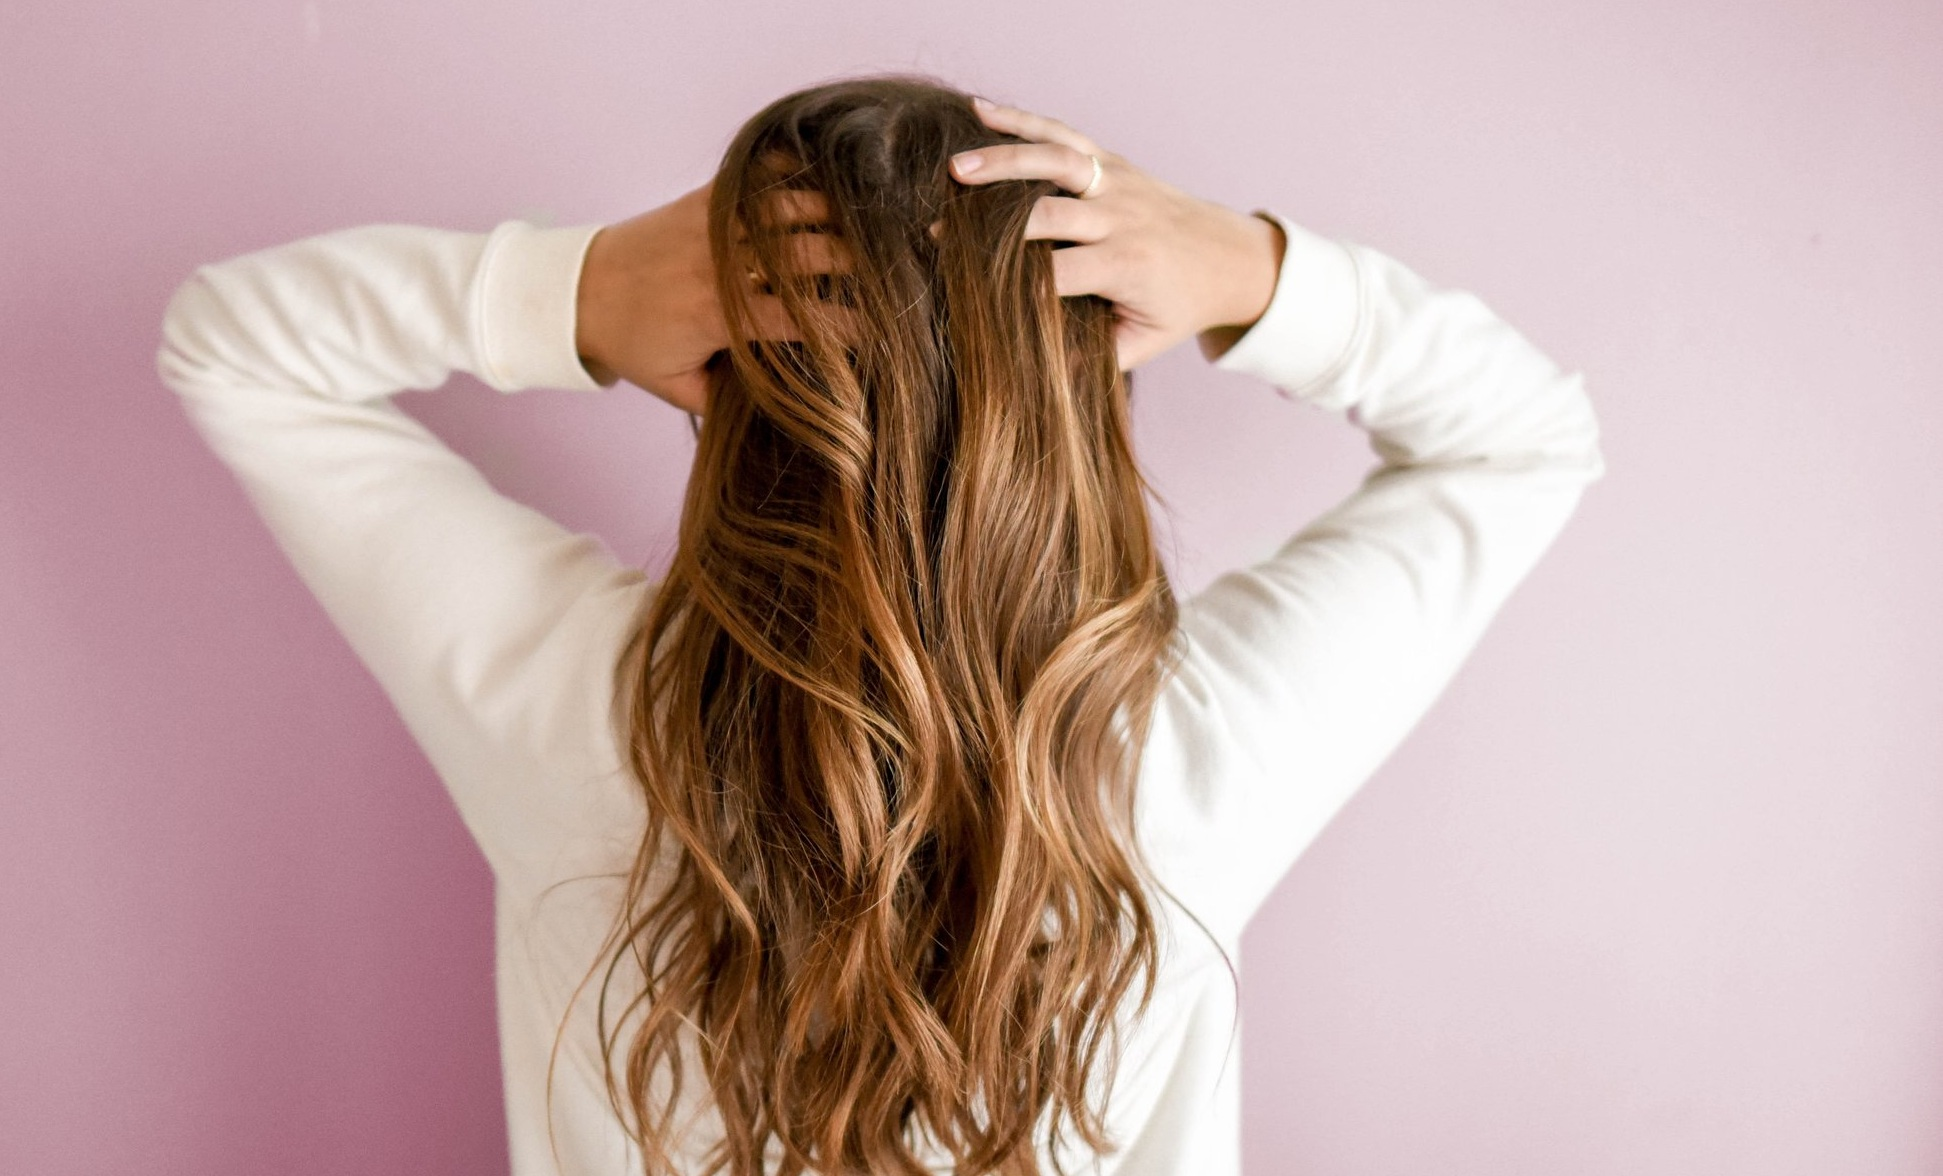 Balayage - Similar to ombré which has a seamless gradation from darker to lighter, Balayage has softer, less noticeable regrowth lines than traditional highlights. With our balayage service, we embrace the idea that is less is more when creating soft, natural looks.